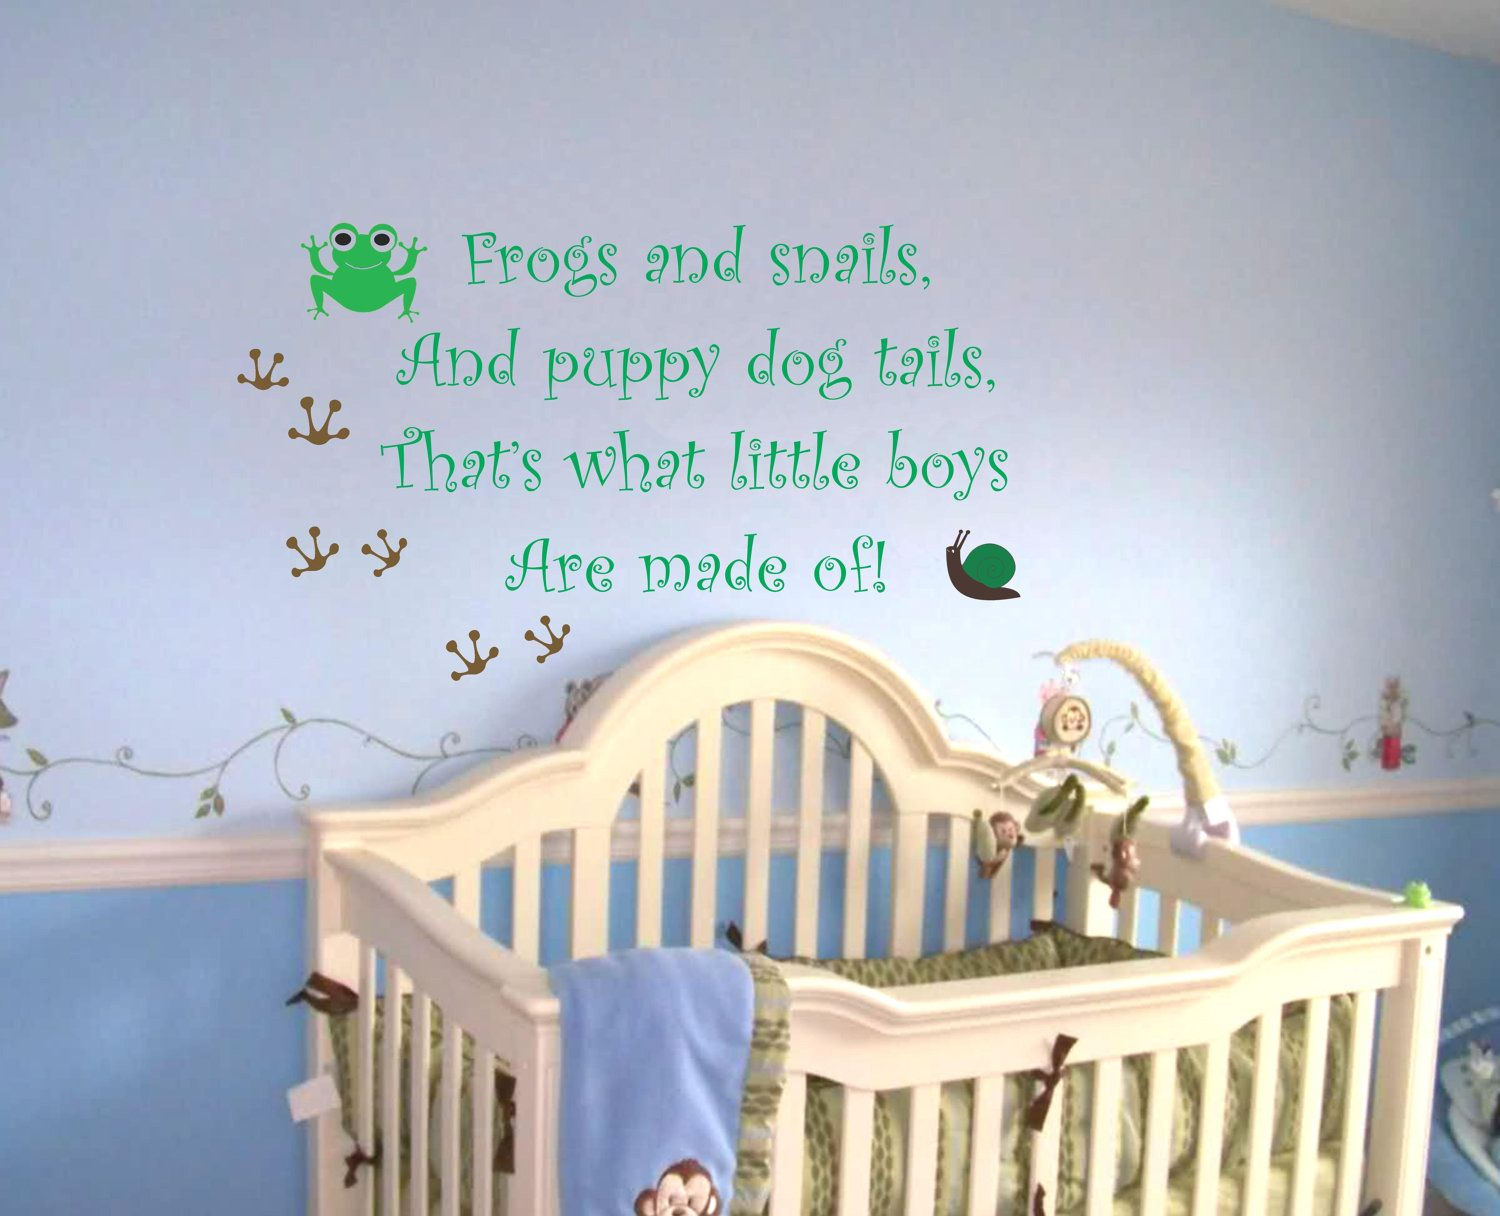 Baby boy room decor stickers - Baby Boy Nursery Saying Frogs And Snails Wall Quote Wall Decal Frog Decals Nursery Wall Decal Boys Sayings Decals Nursery Wall Art Decals